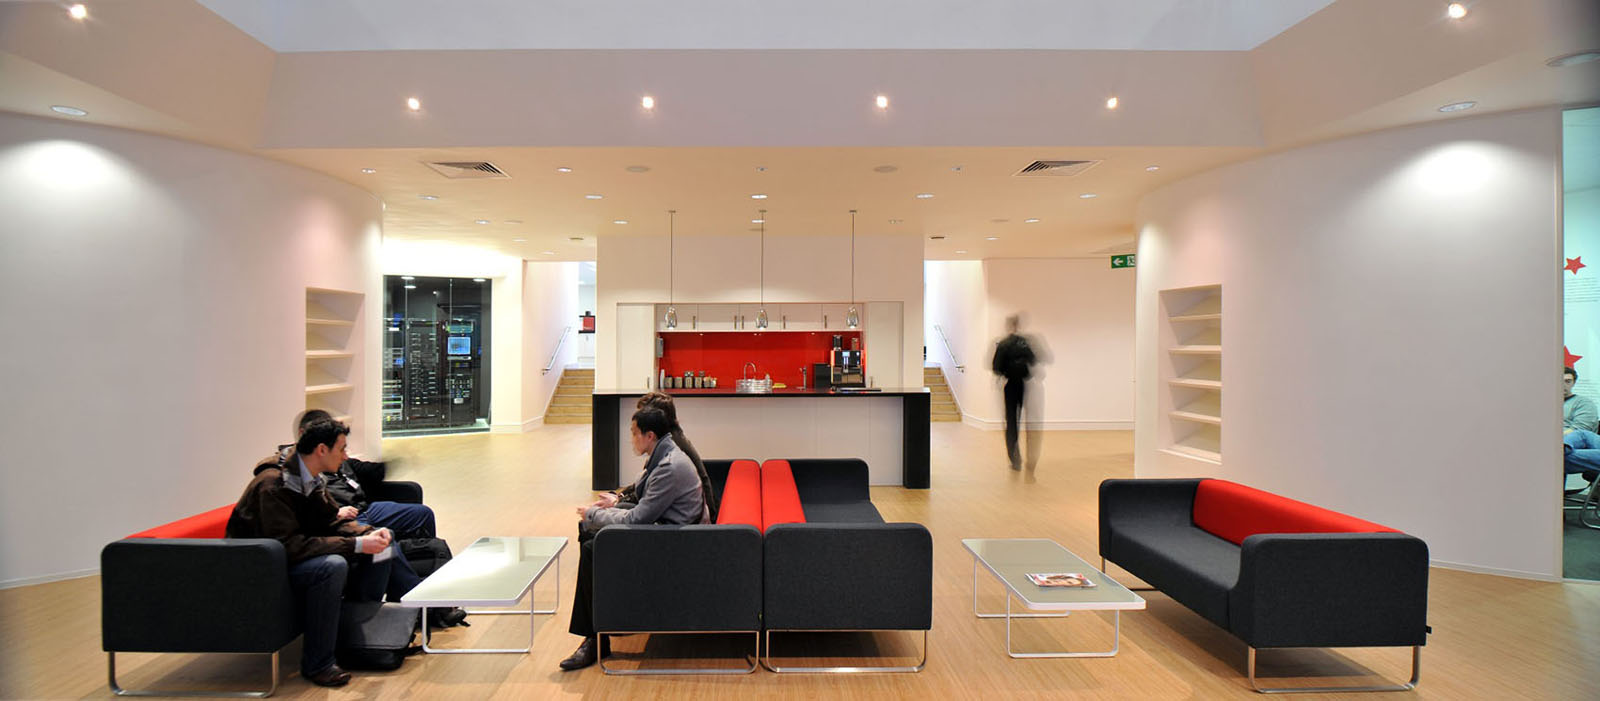 Inspiring british office interior design at rackspace for Office pictures